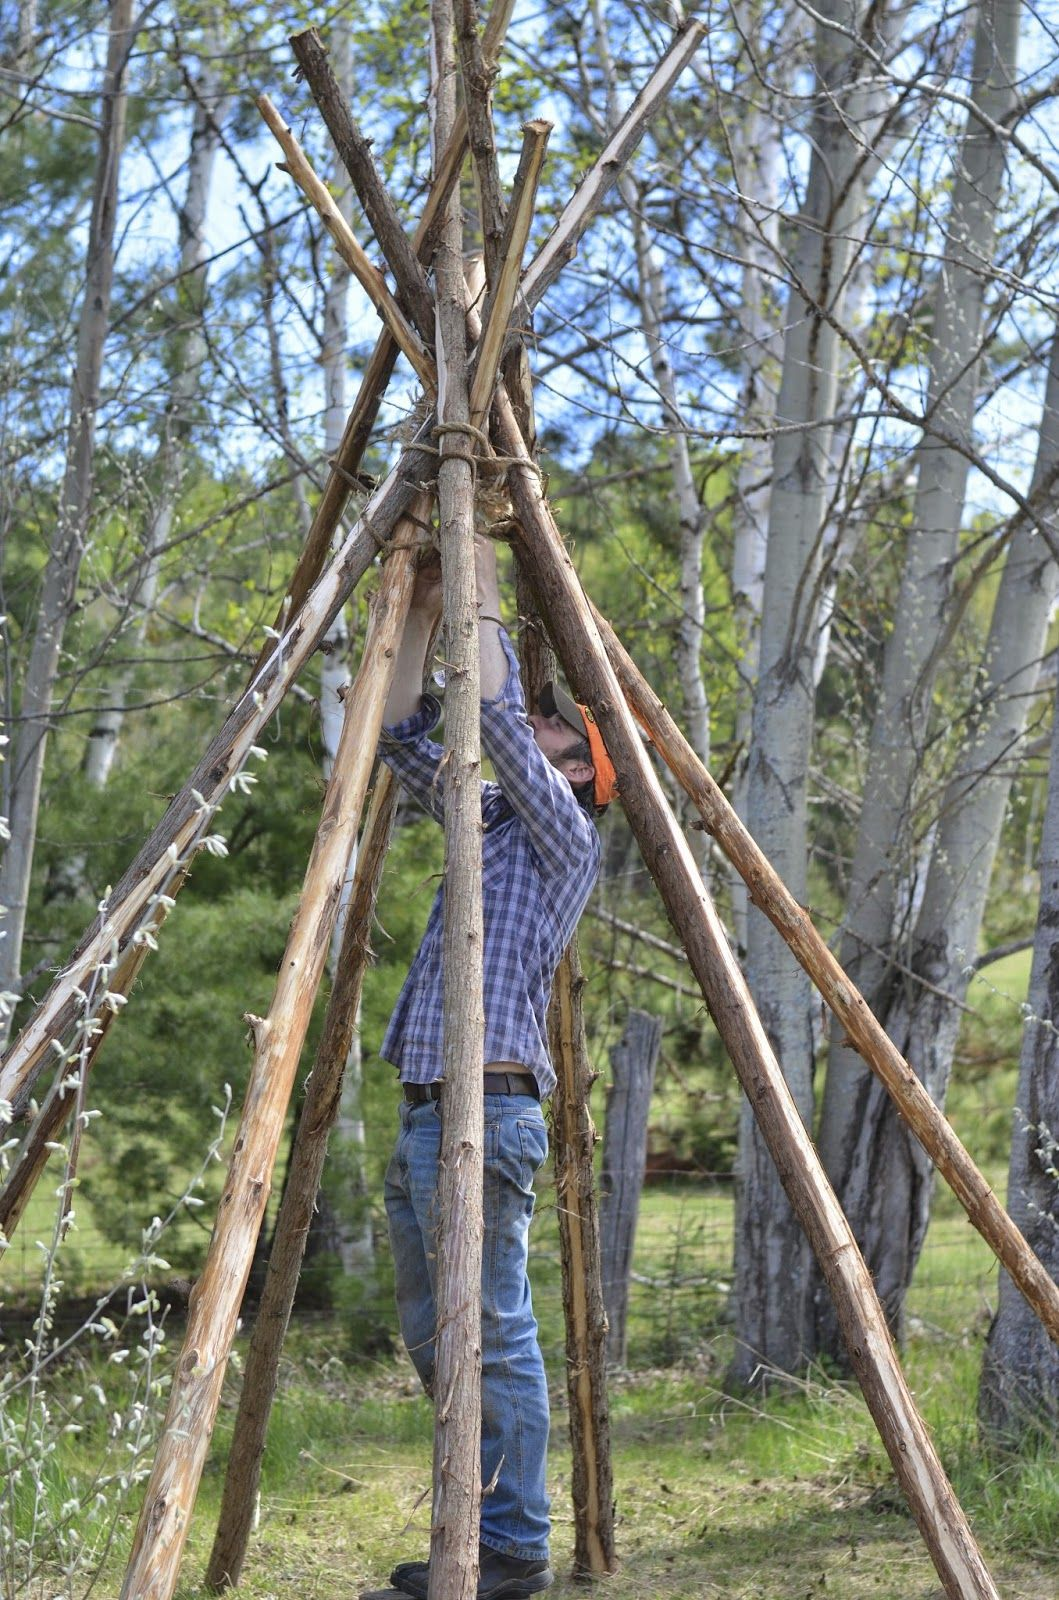 So Here Is A Quick Quot How To Quot Guide To Getting Up A Teepee